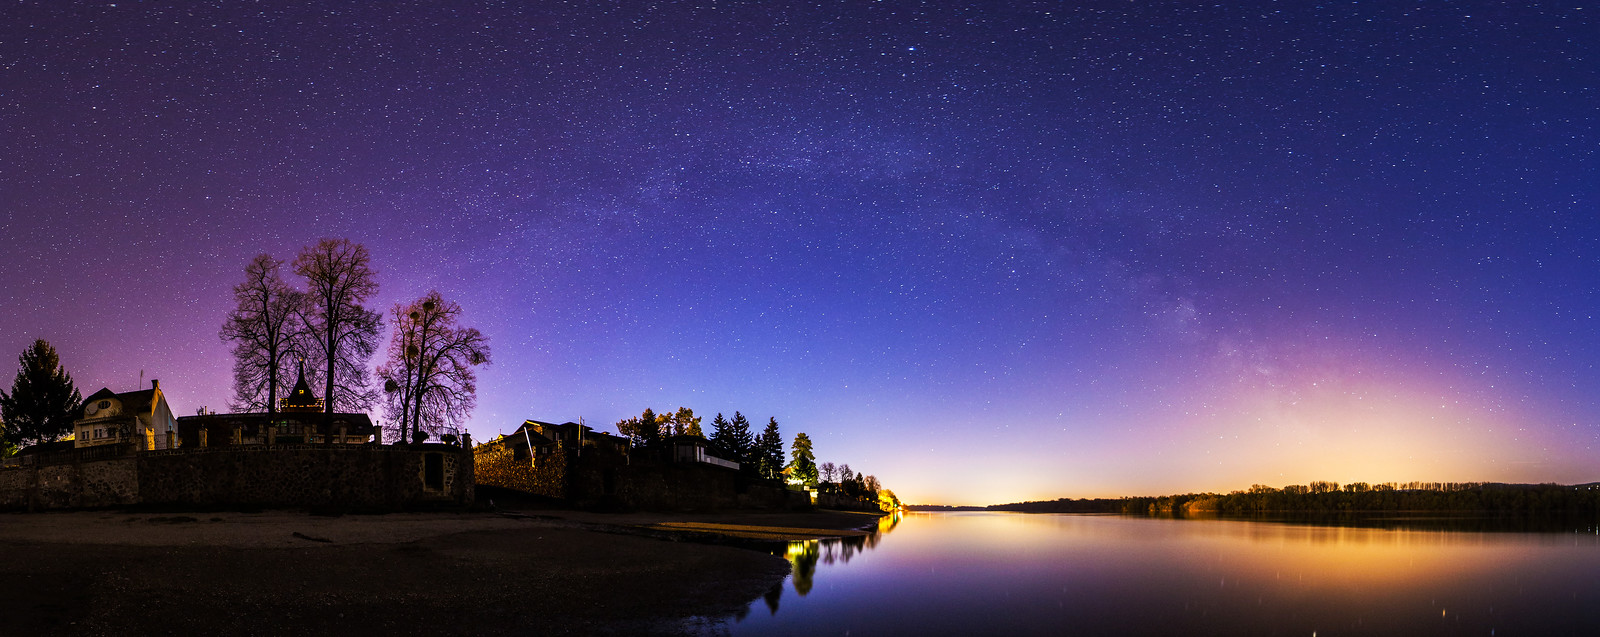 Milky Way panorama over the Danube in Hungary